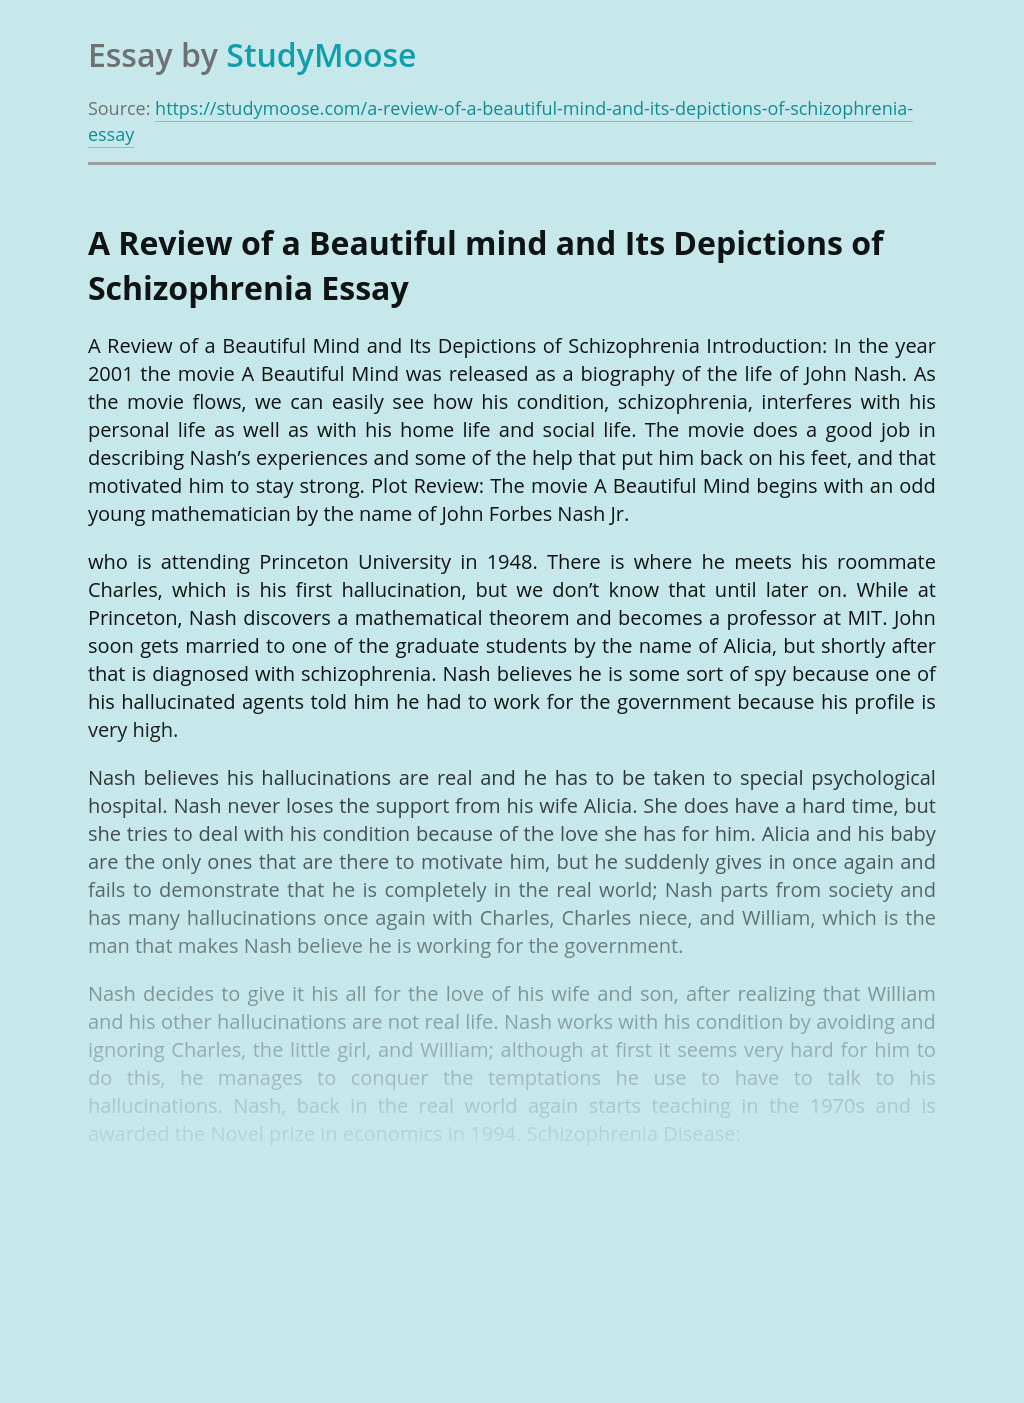 A Review of a Beautiful mind and Its Depictions of Schizophrenia